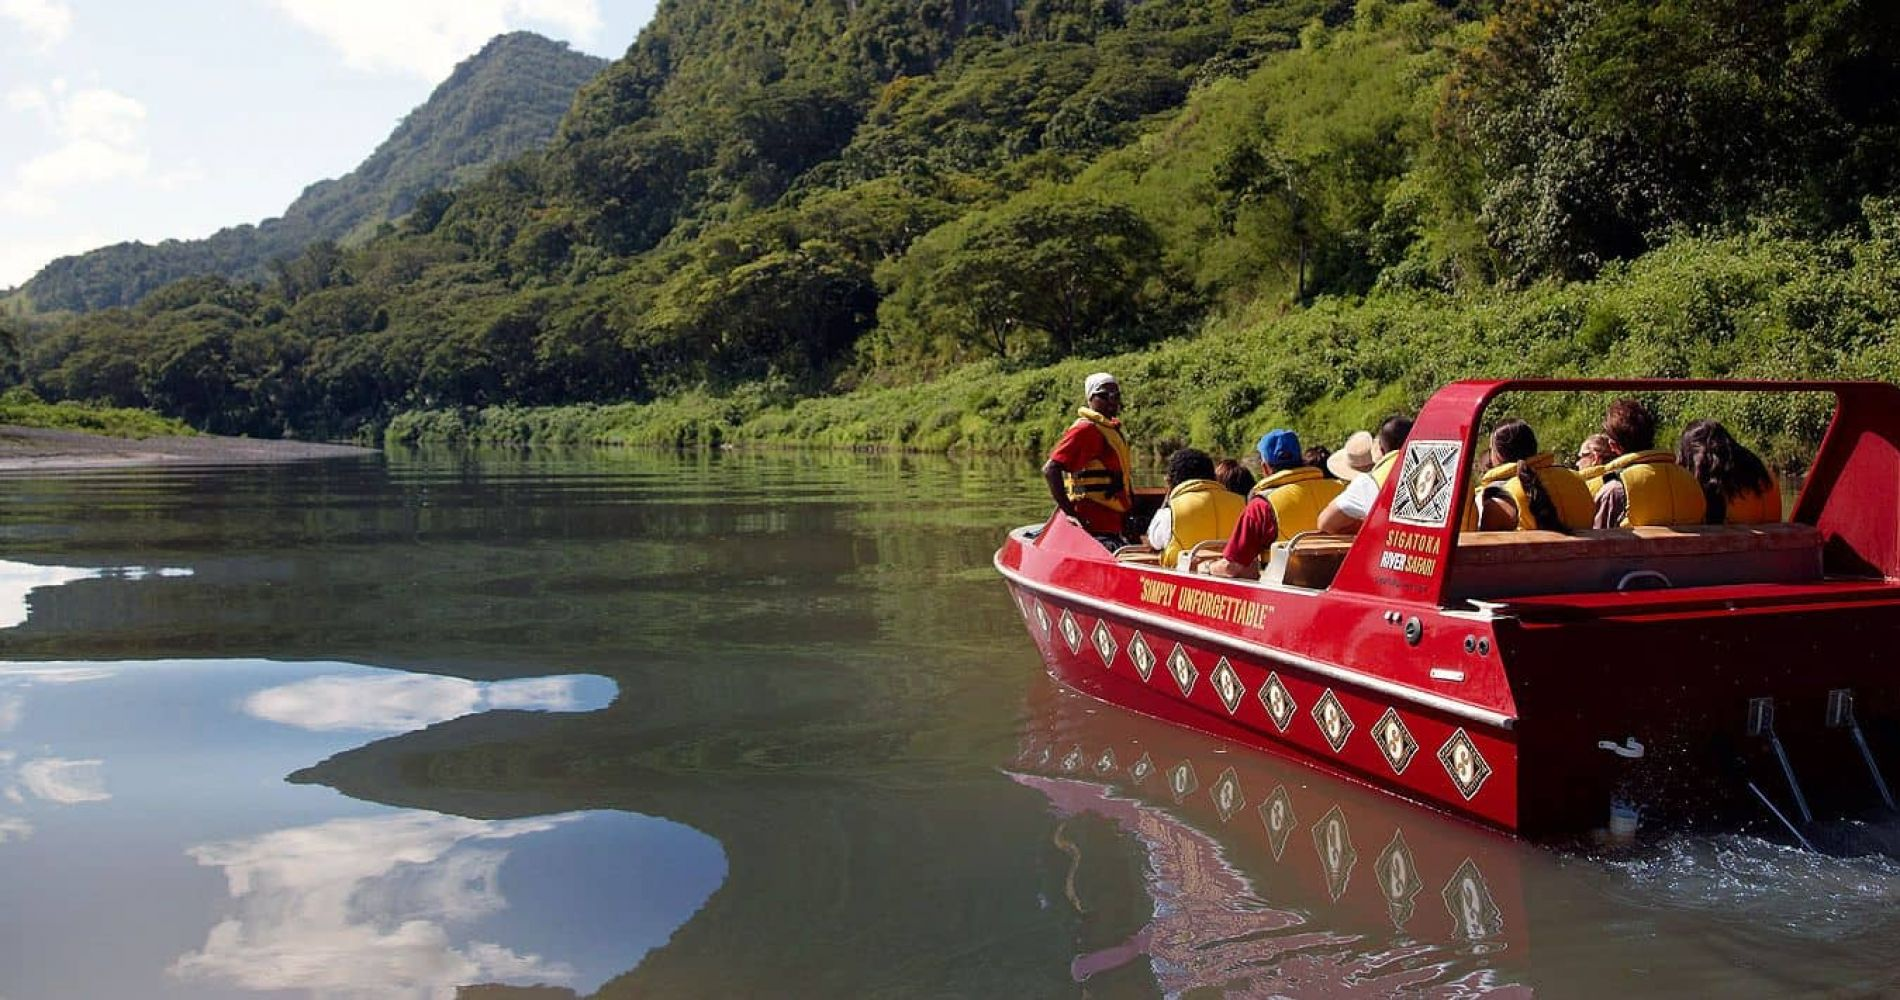 Unique Sigatoka River Jet Boat Safari in Fiji Islands for Two